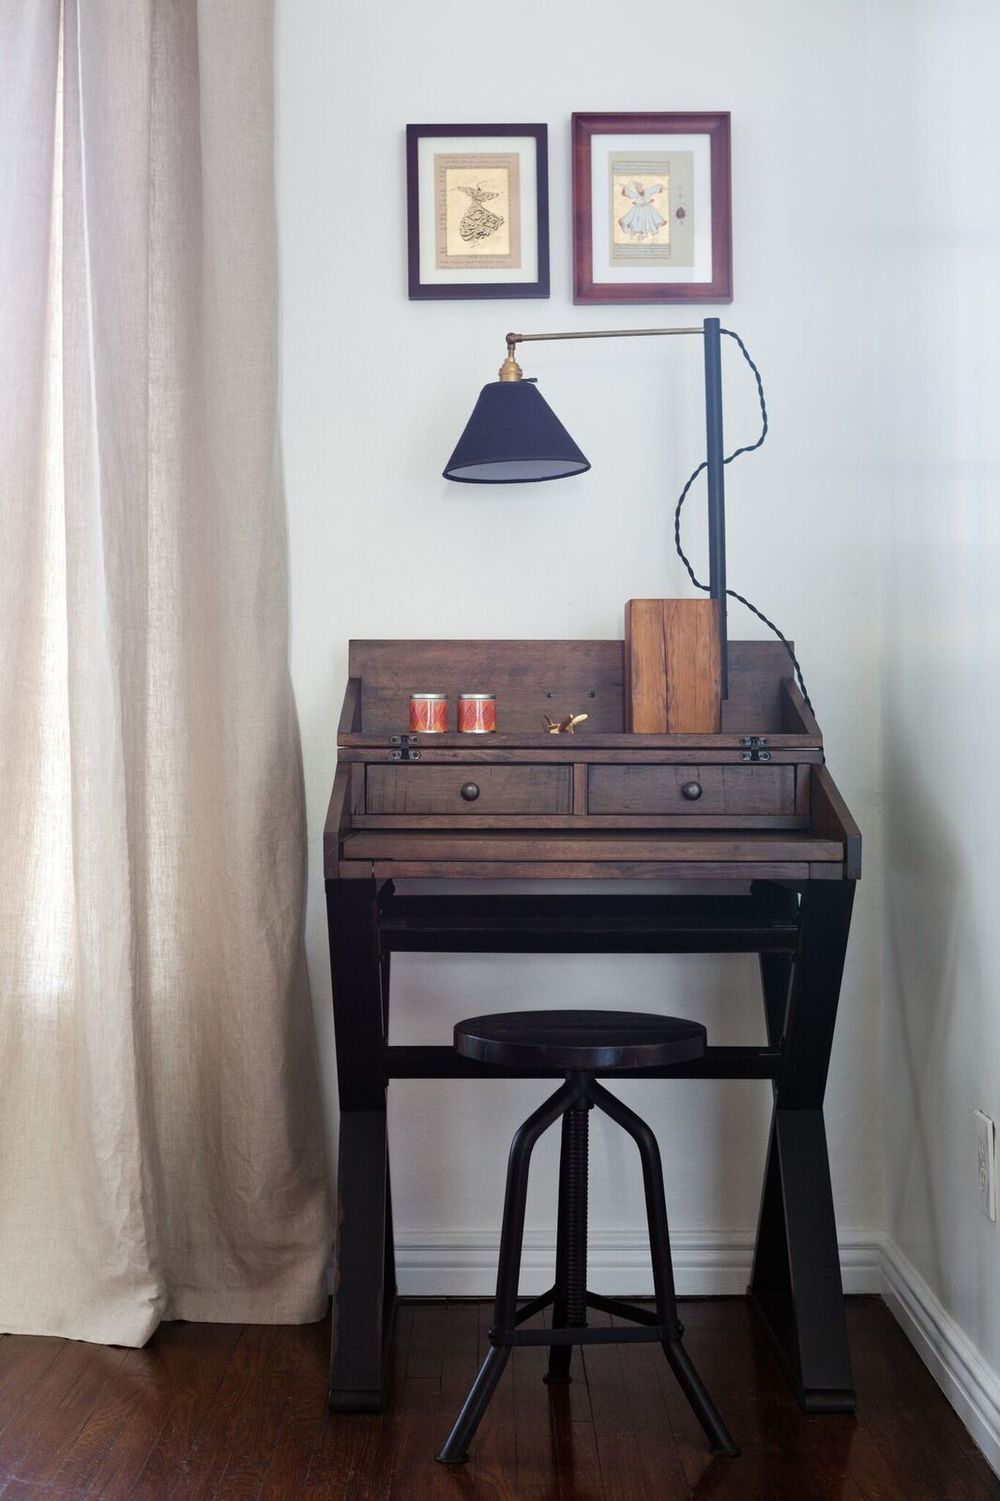 This adorable desk and (adjustable) stool are a perfect fit in this spot.  A pair of the client's vintage illustrations hang above.